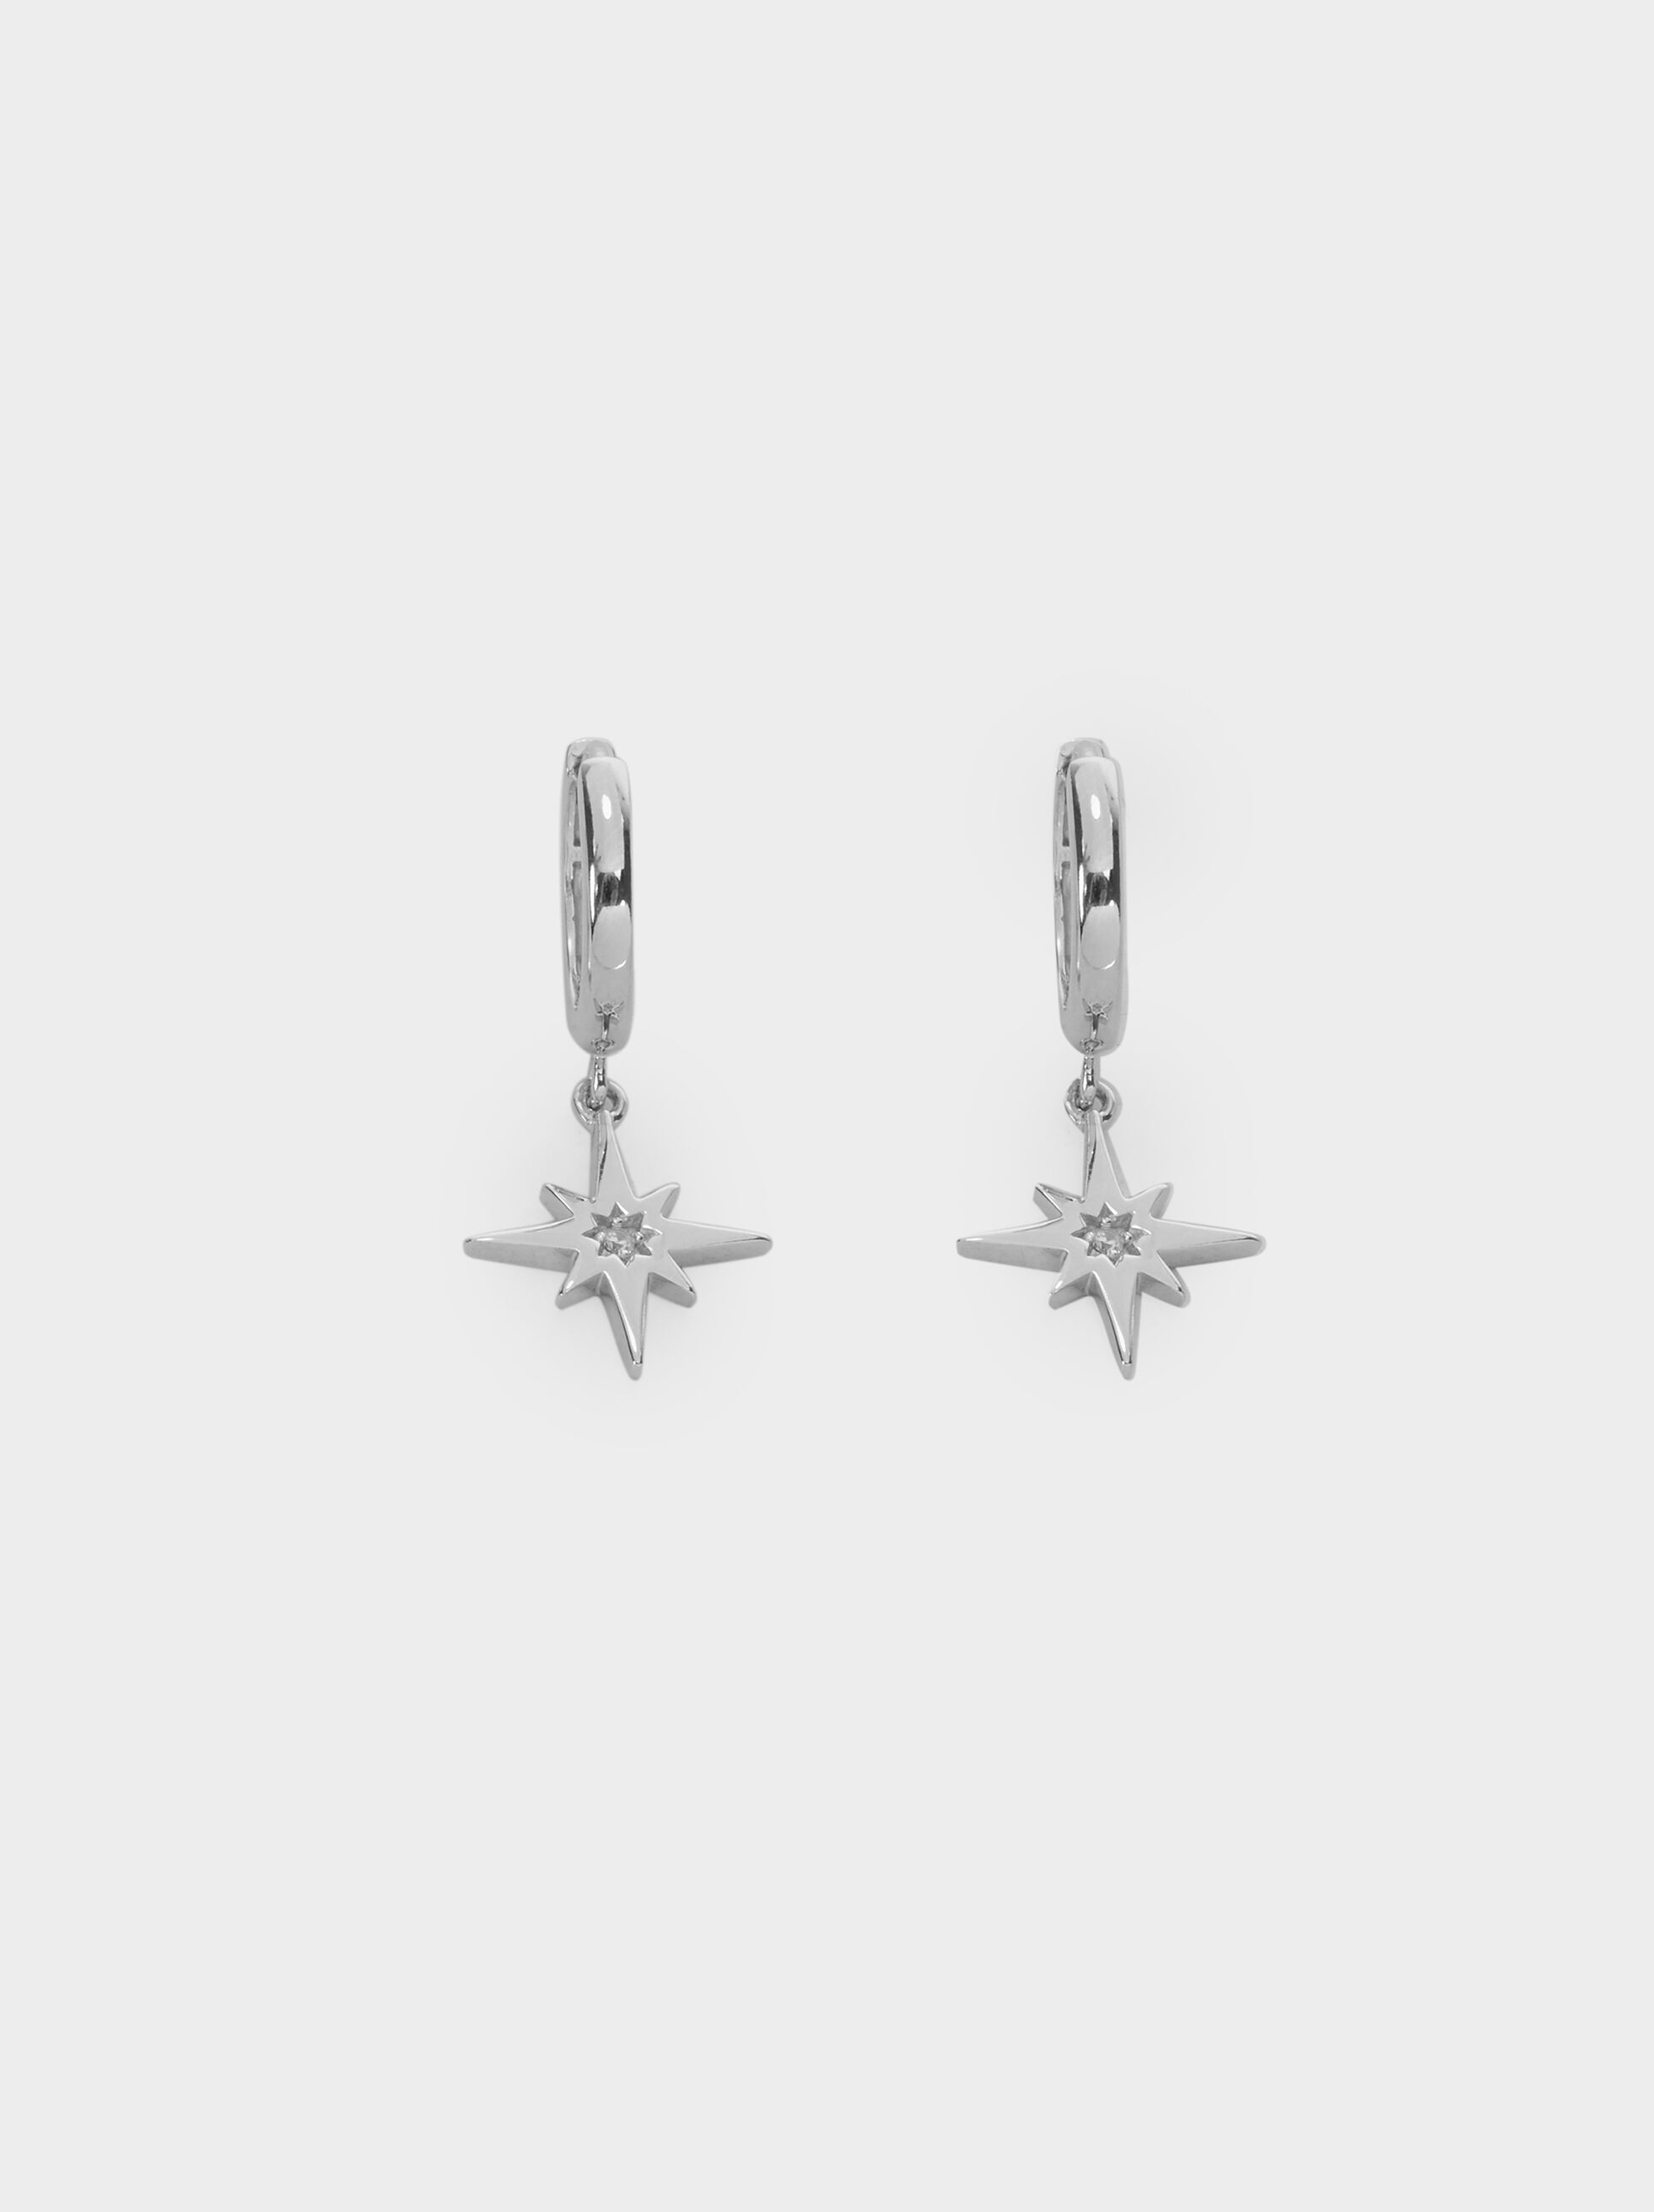 Small 925 Silver Hoop Earrings With Star, Silver, hi-res